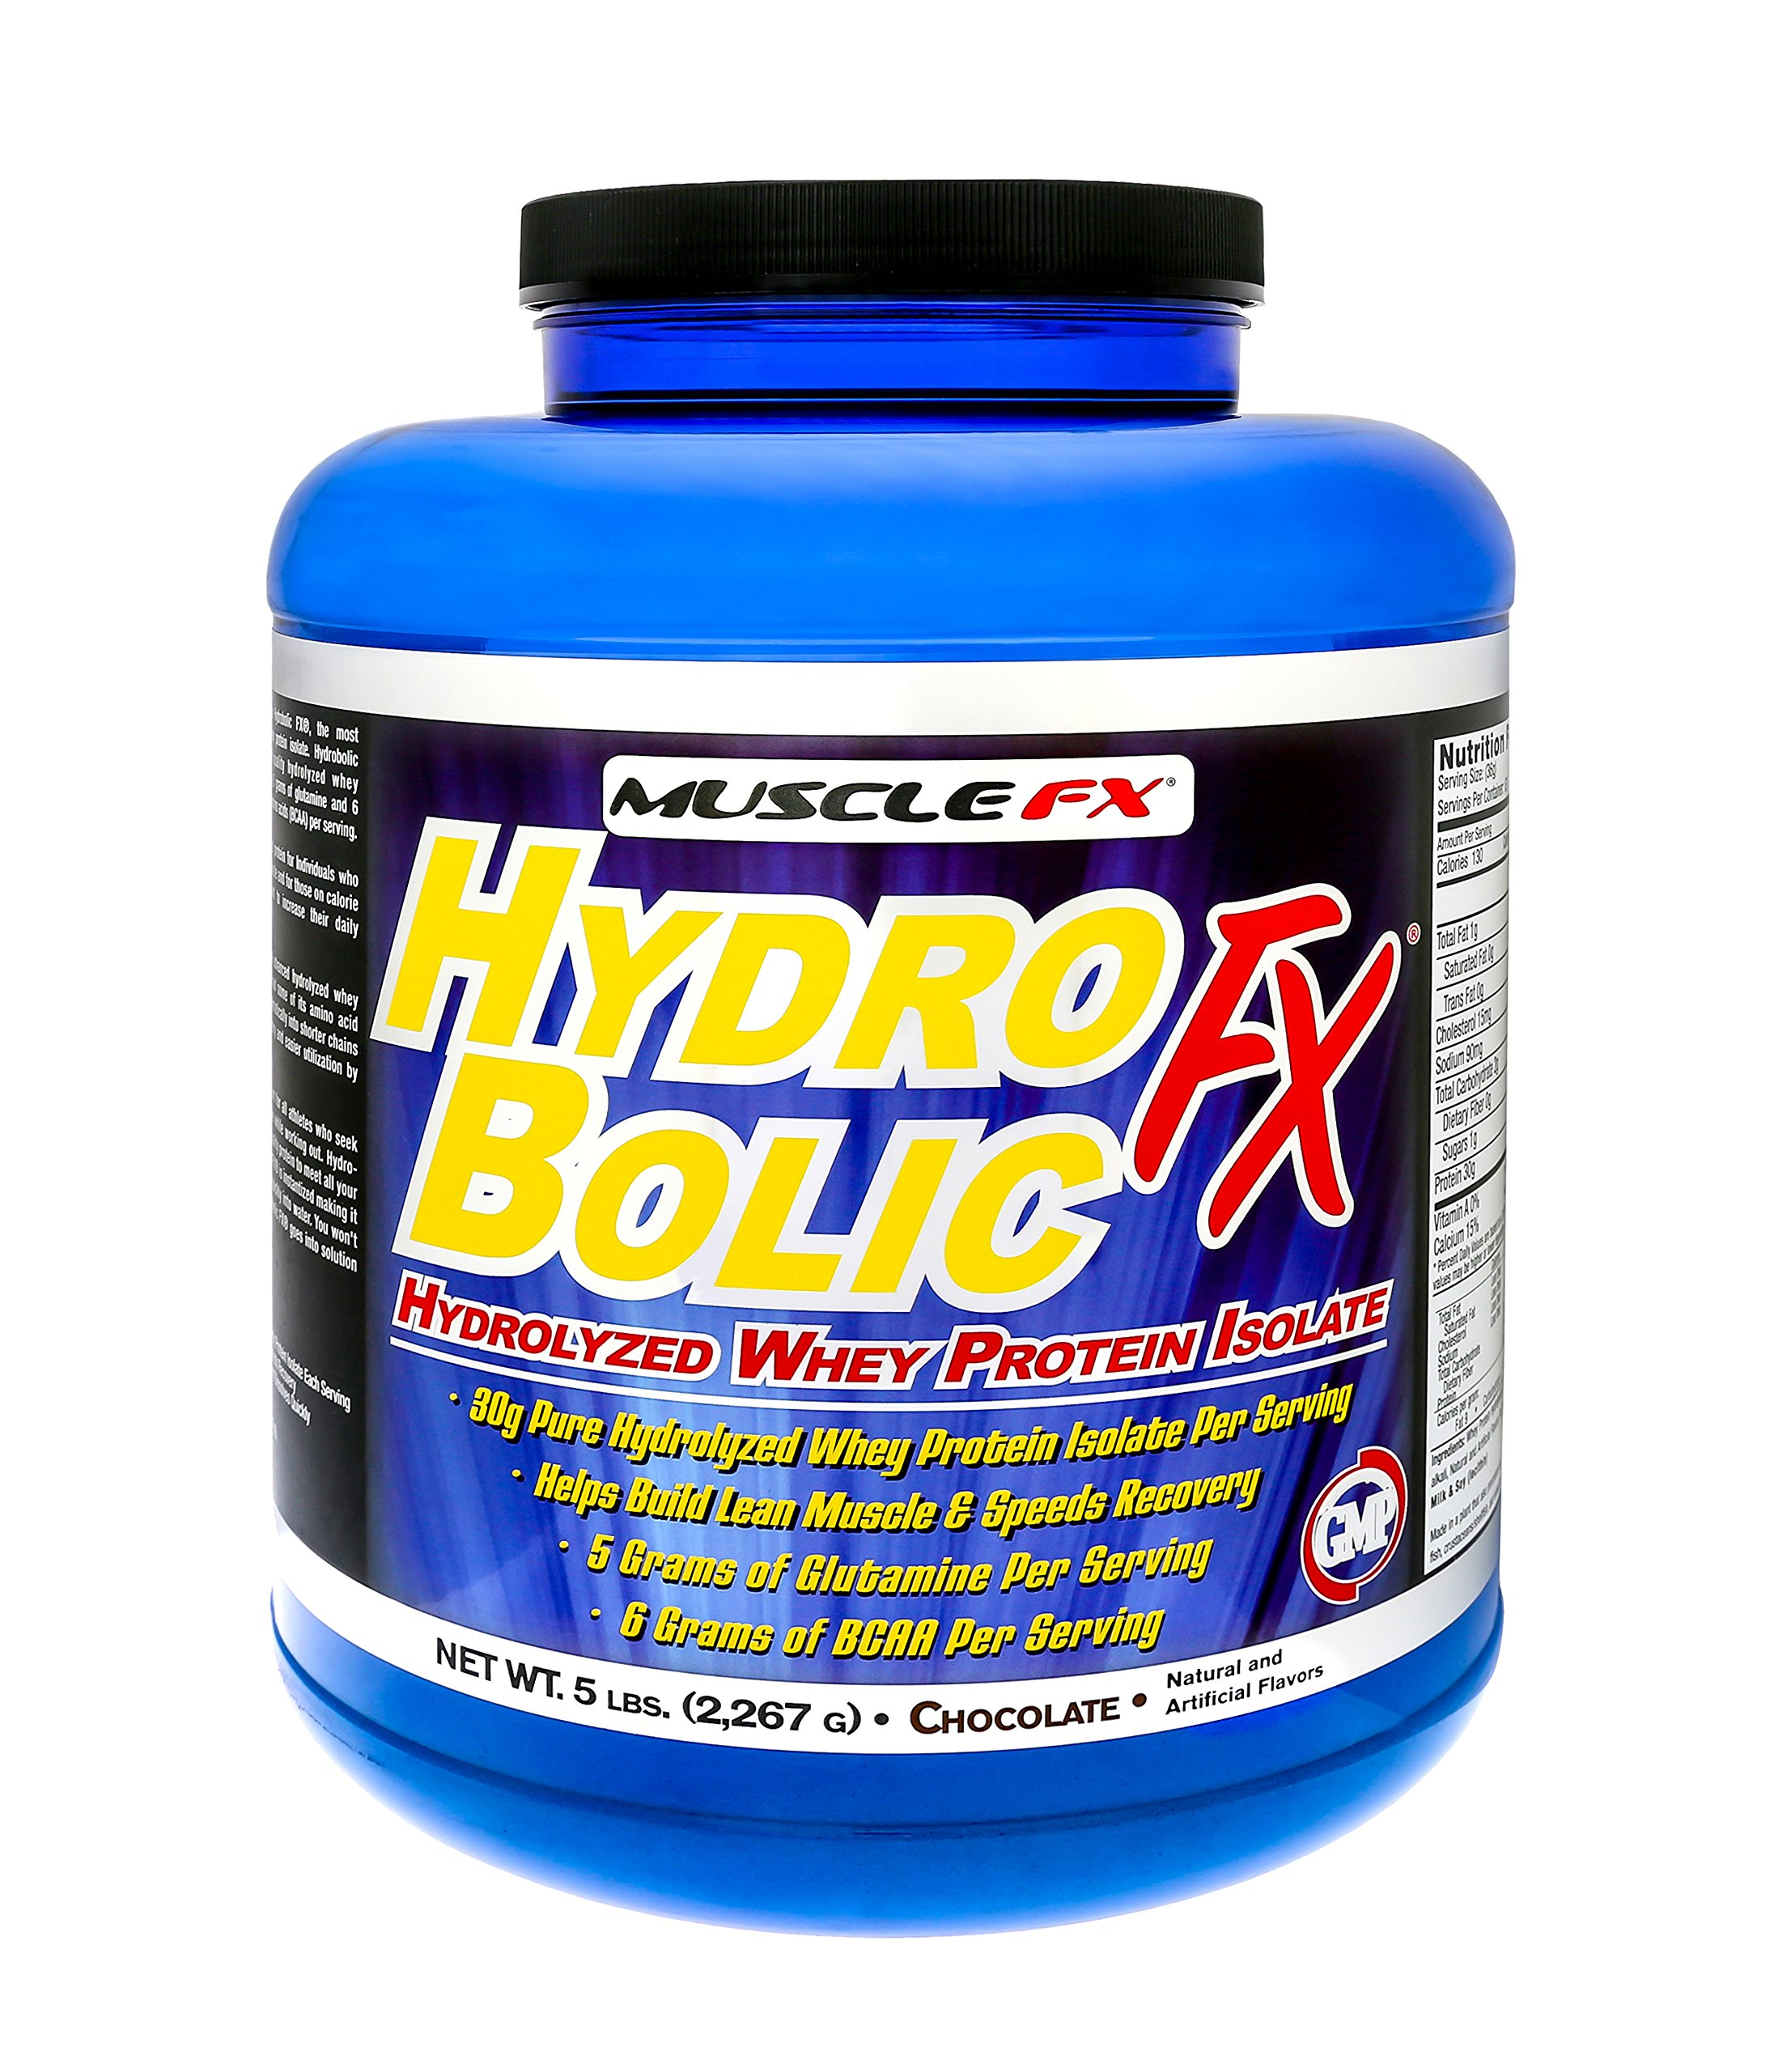 MUSCLE FX® HYDROBOLIC FX® Pure Hydrolyzed Whey Protein Isolate 5 lbs Chocolate (5 lbs)